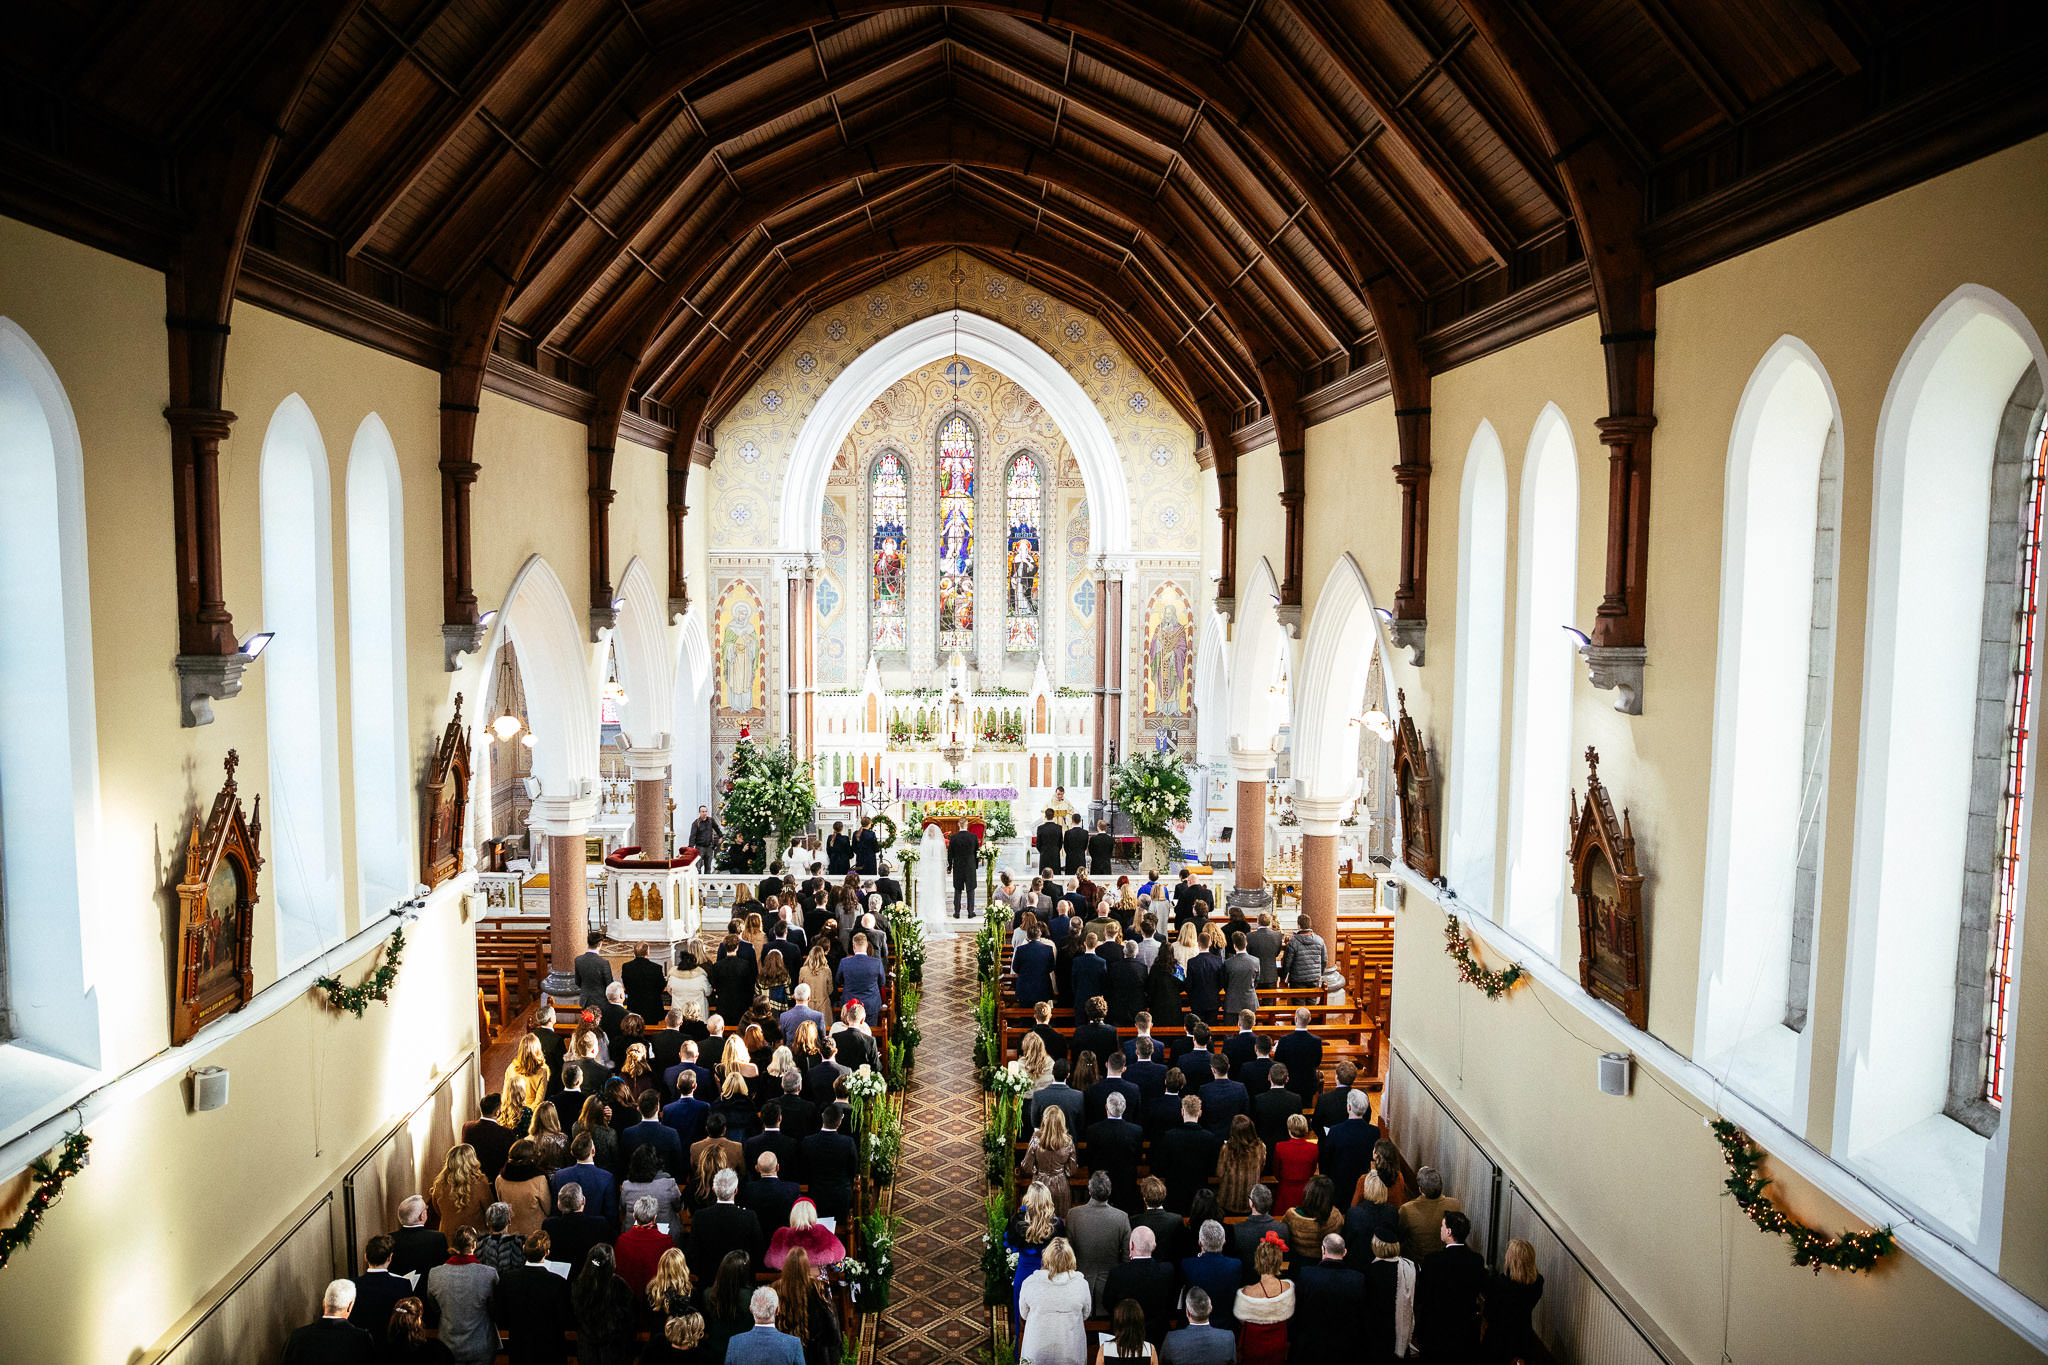 gallery view of congregation during wedding ceremony at St Brigid's Church Oldcastle